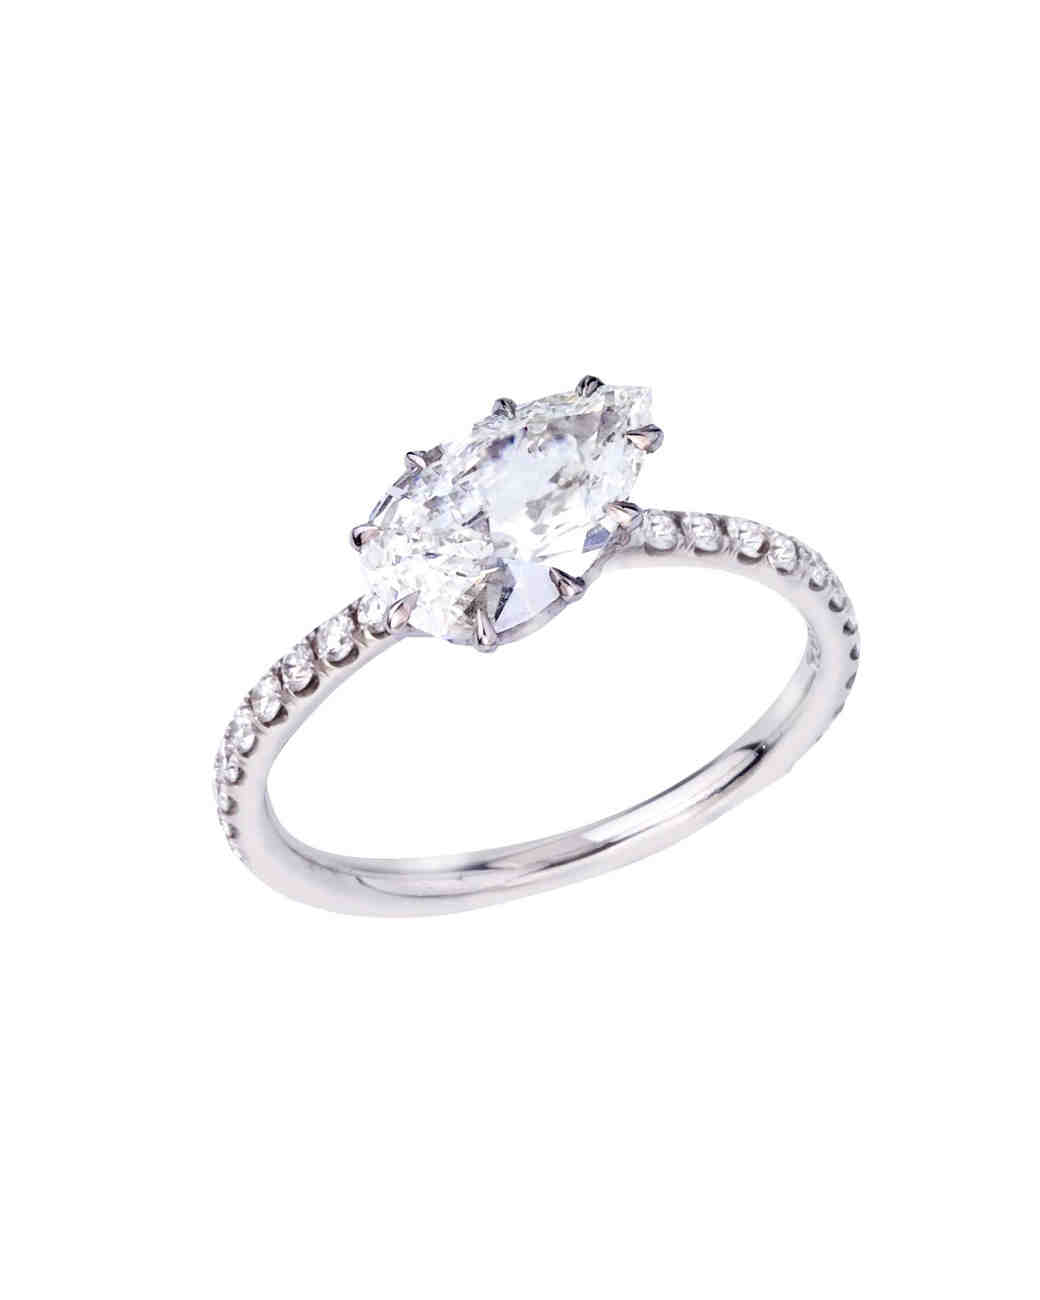 bands sg halo front today design ring venus tears blog engagement jewellery haloside new wedding designs side